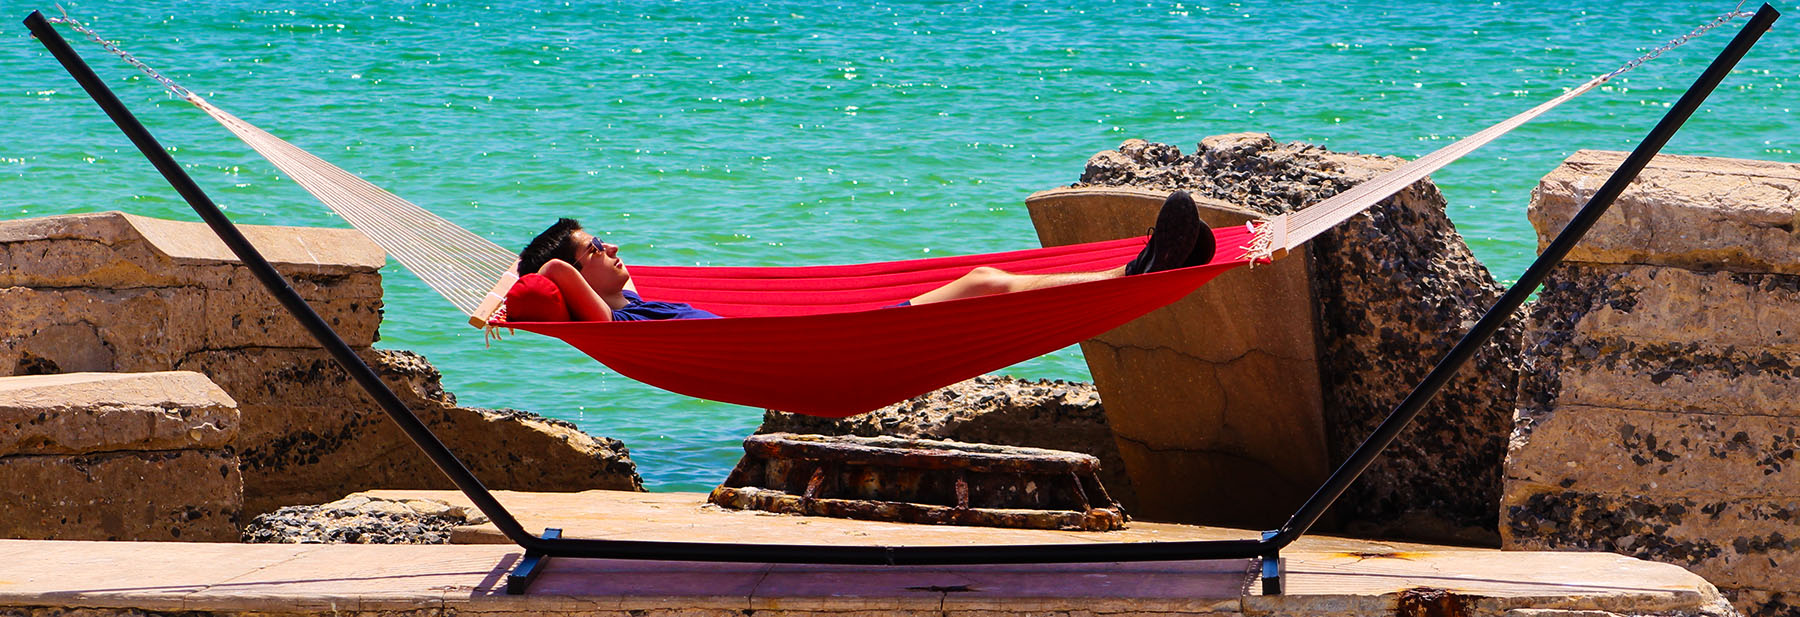 hammock universe man in a red hammock by the ocean